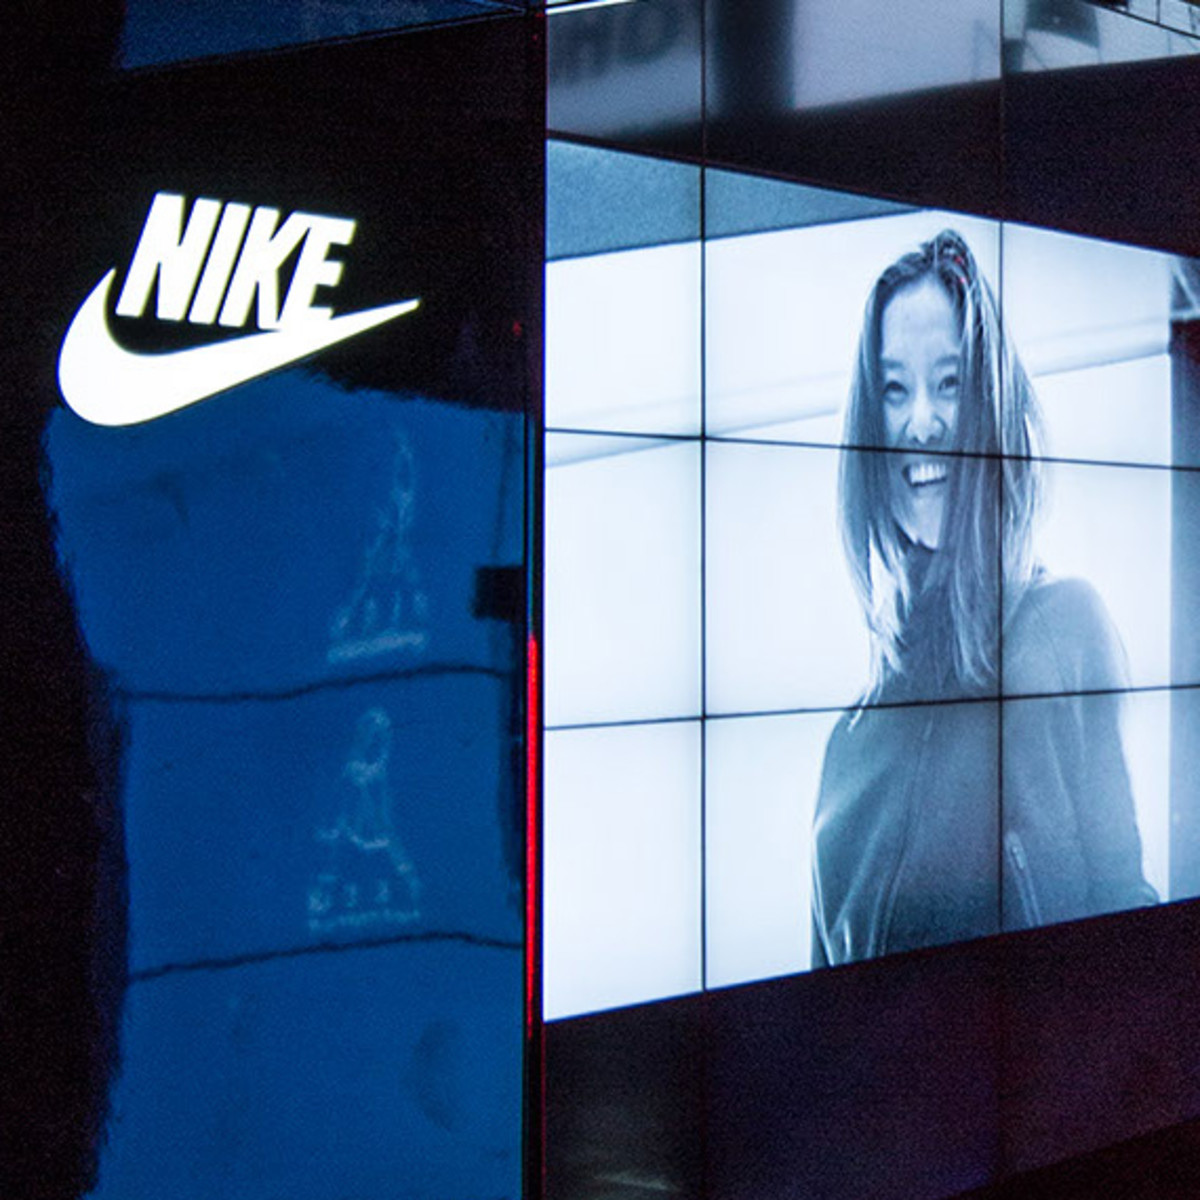 nike-tech-pack-retail-experience-booth-shanghai-14